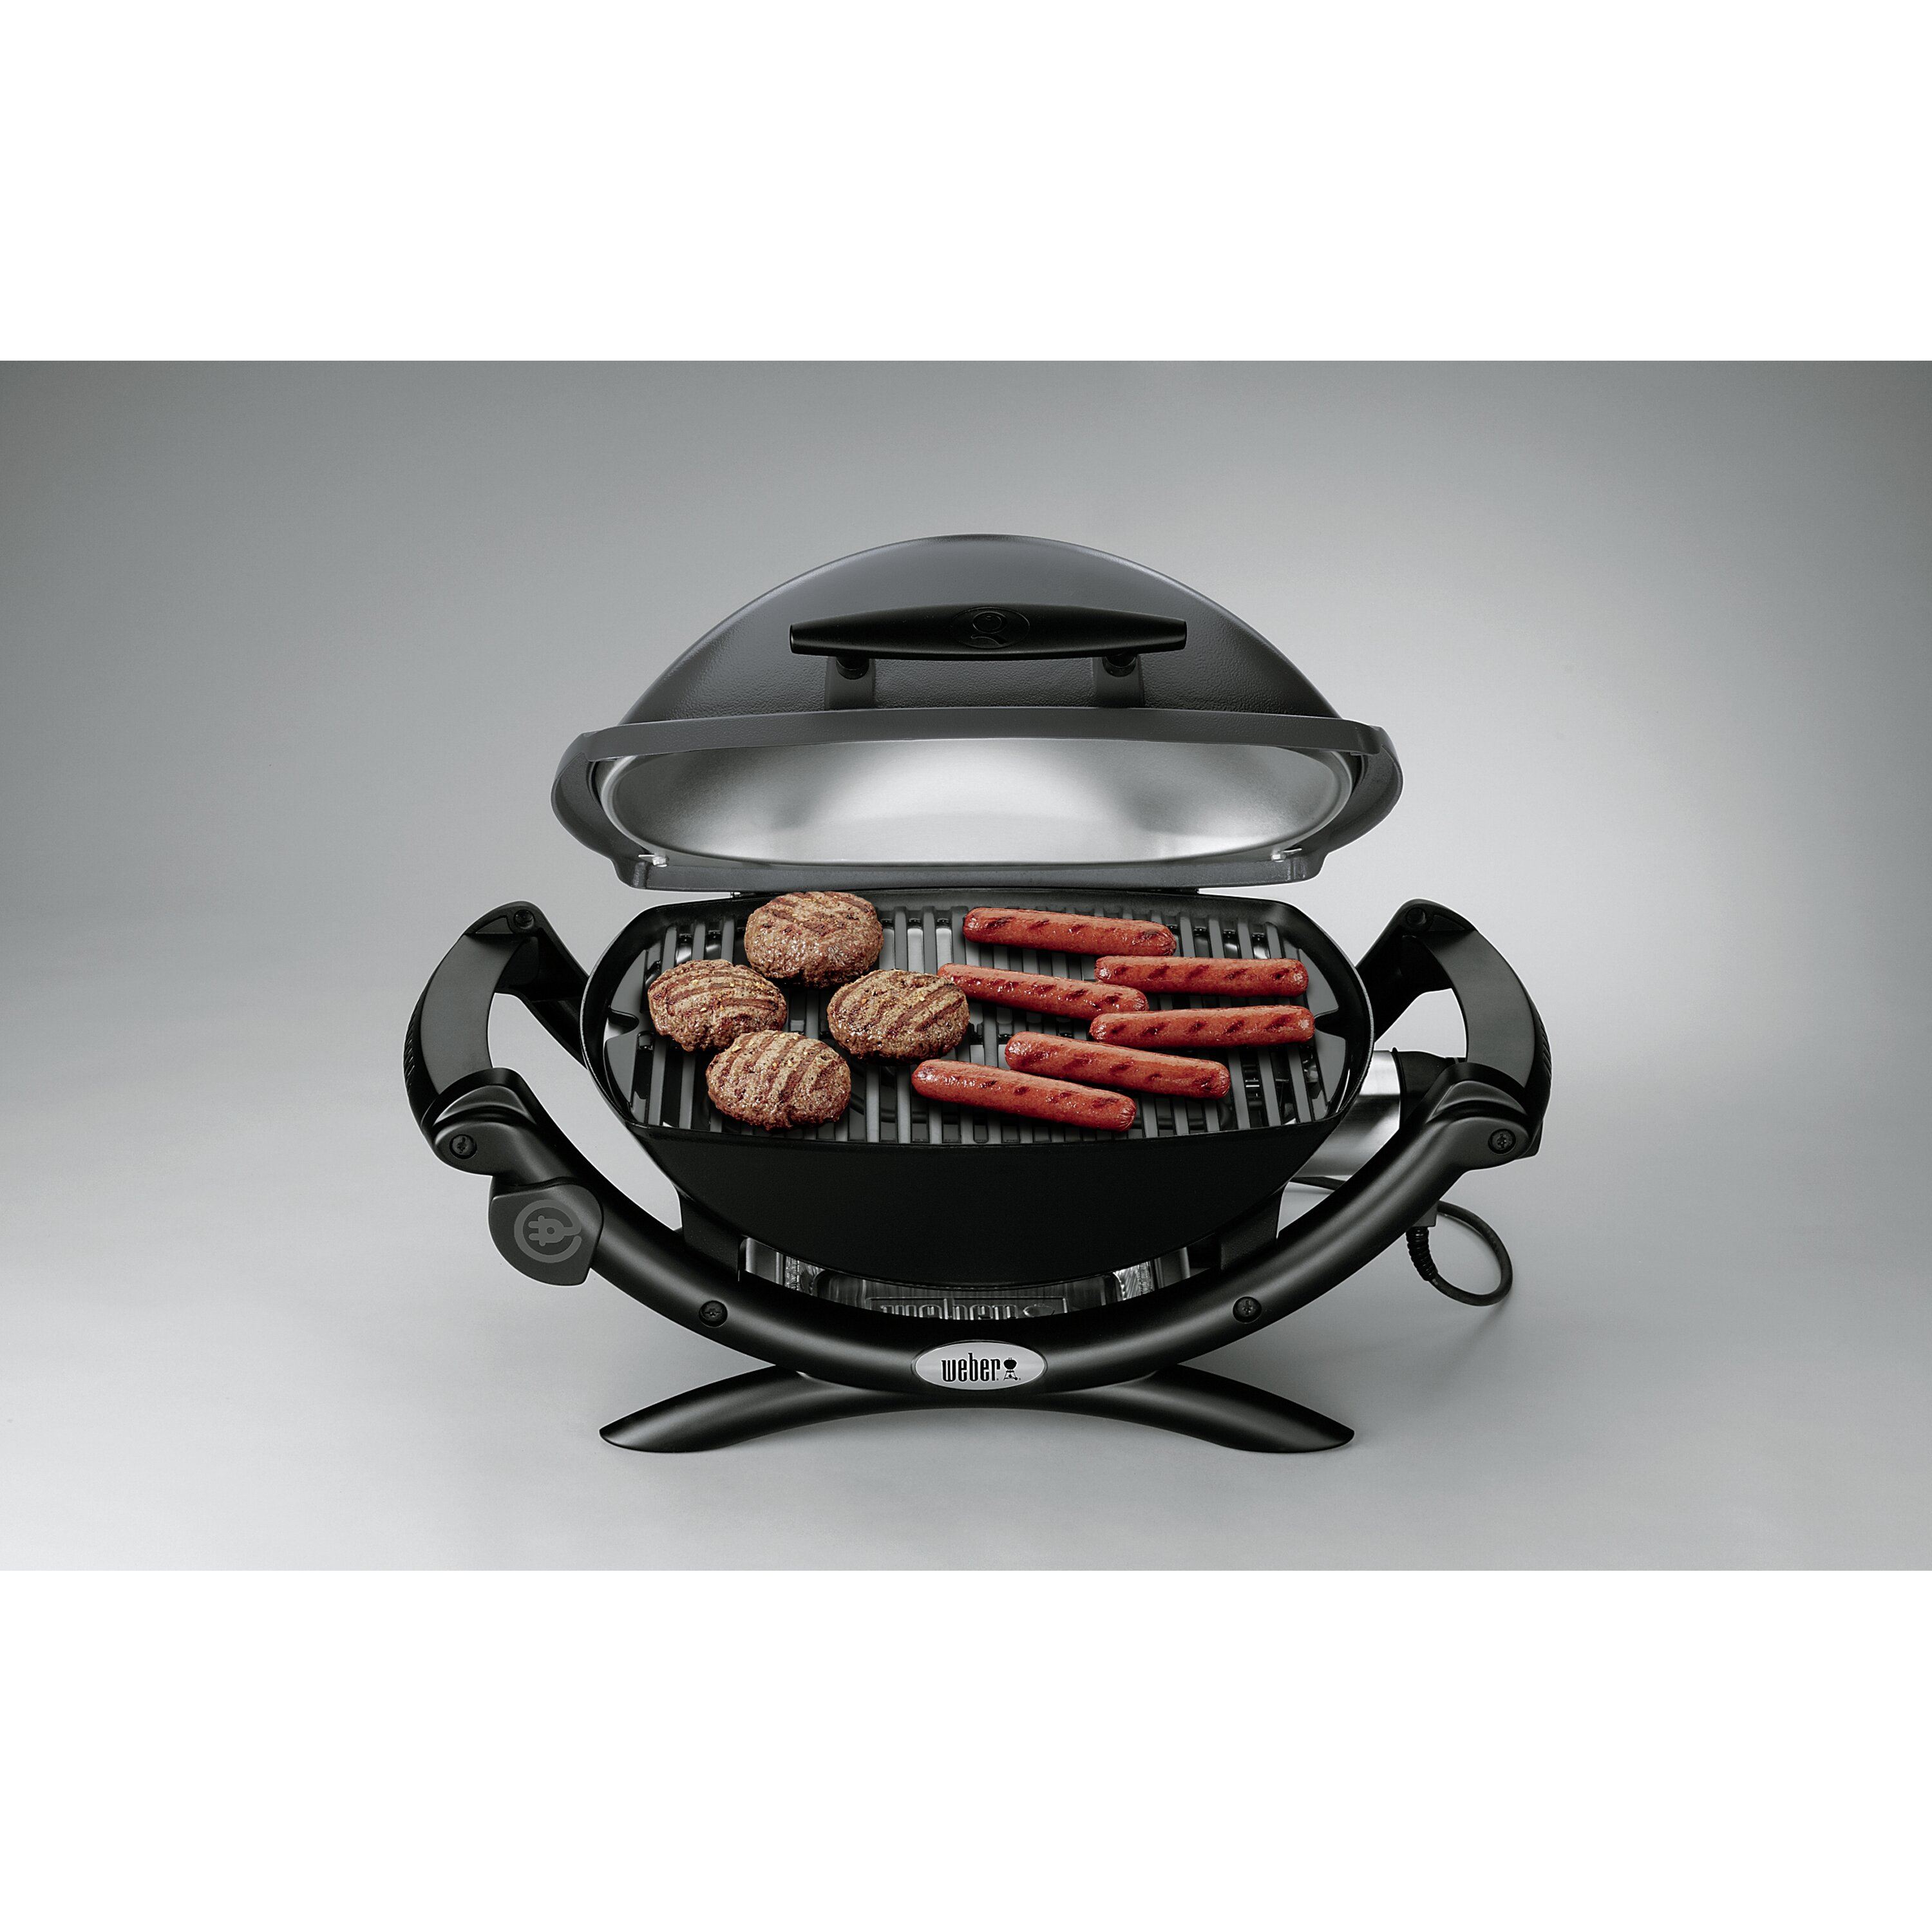 weber q series 1400 electric grill reviews wayfair. Black Bedroom Furniture Sets. Home Design Ideas